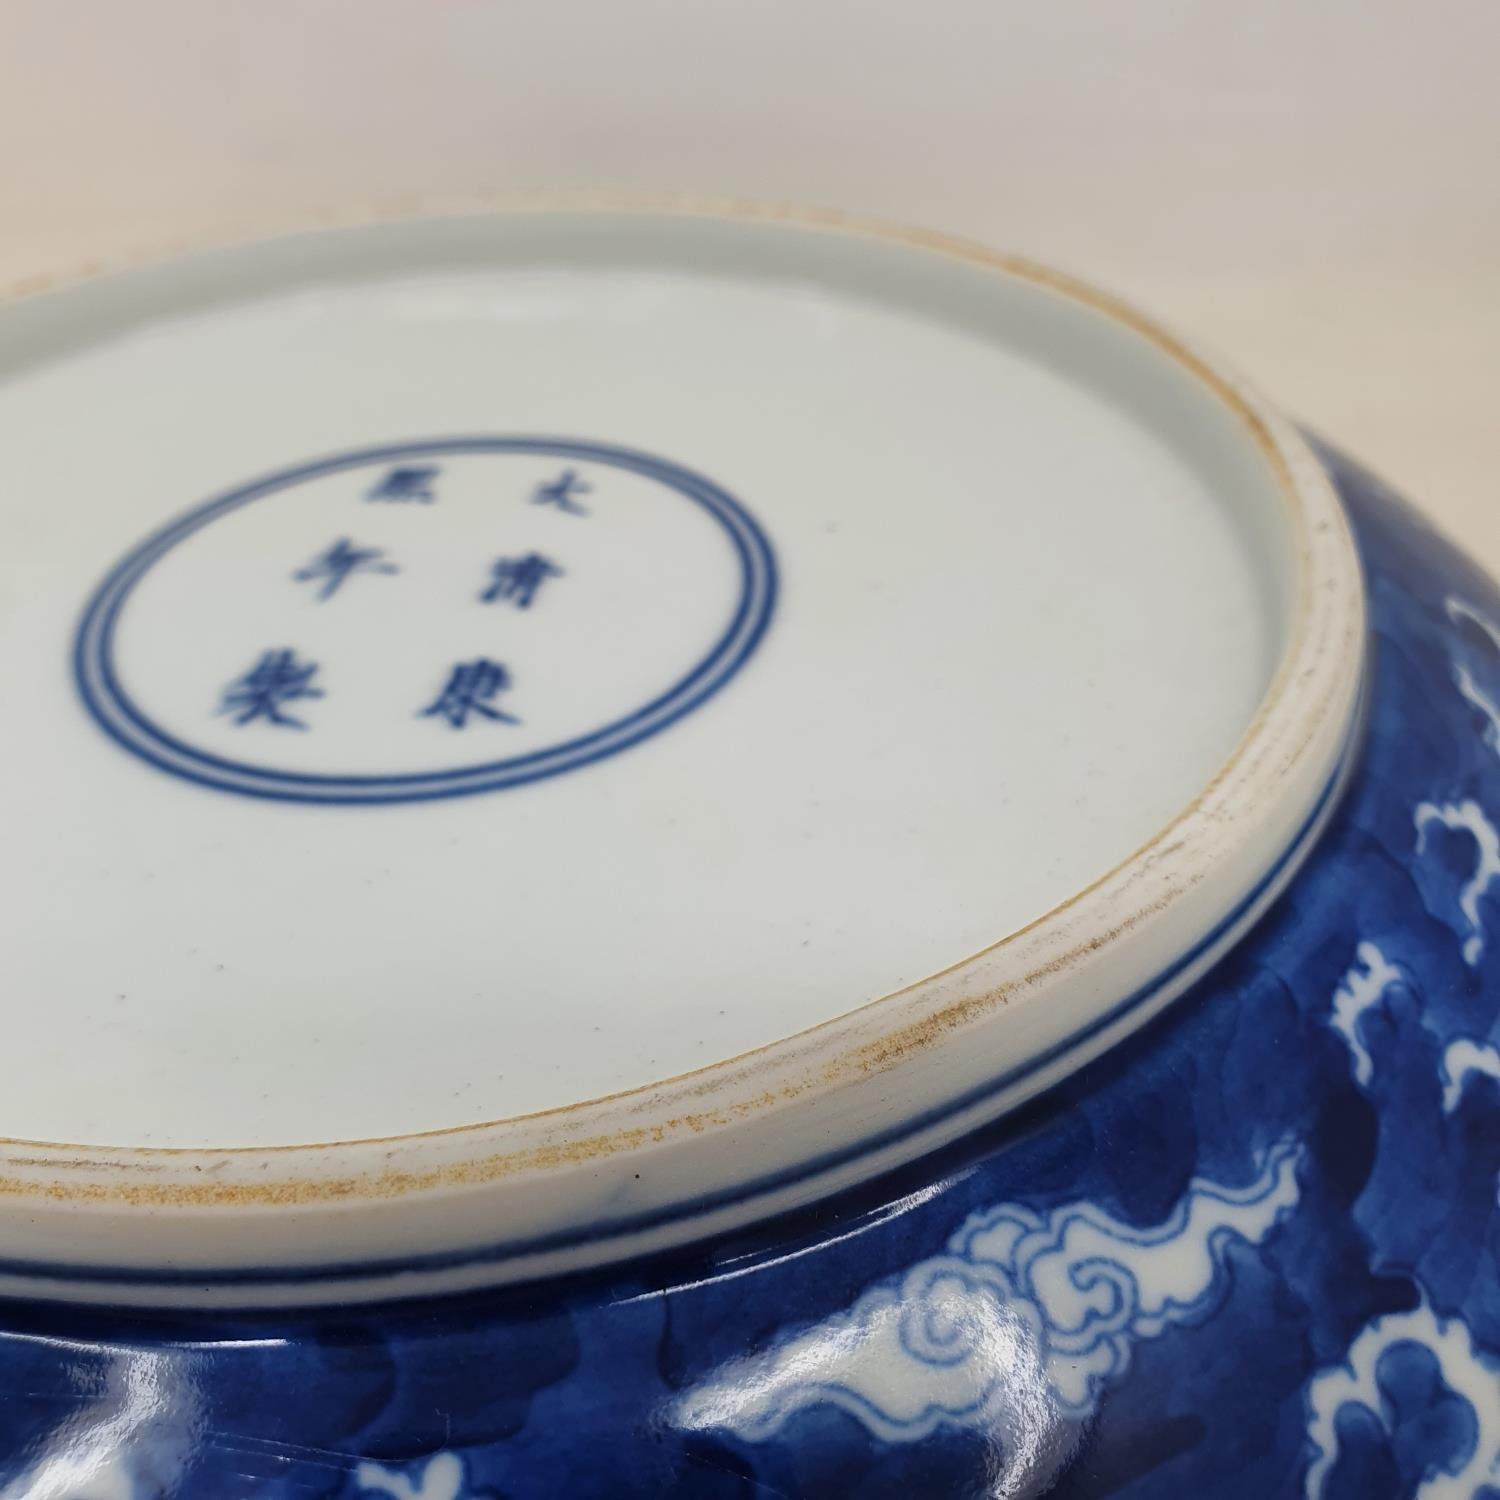 A Chinese blue and white plate, decorated with dragon chasing a flaming pearl, 25 cm diameter - Image 4 of 6